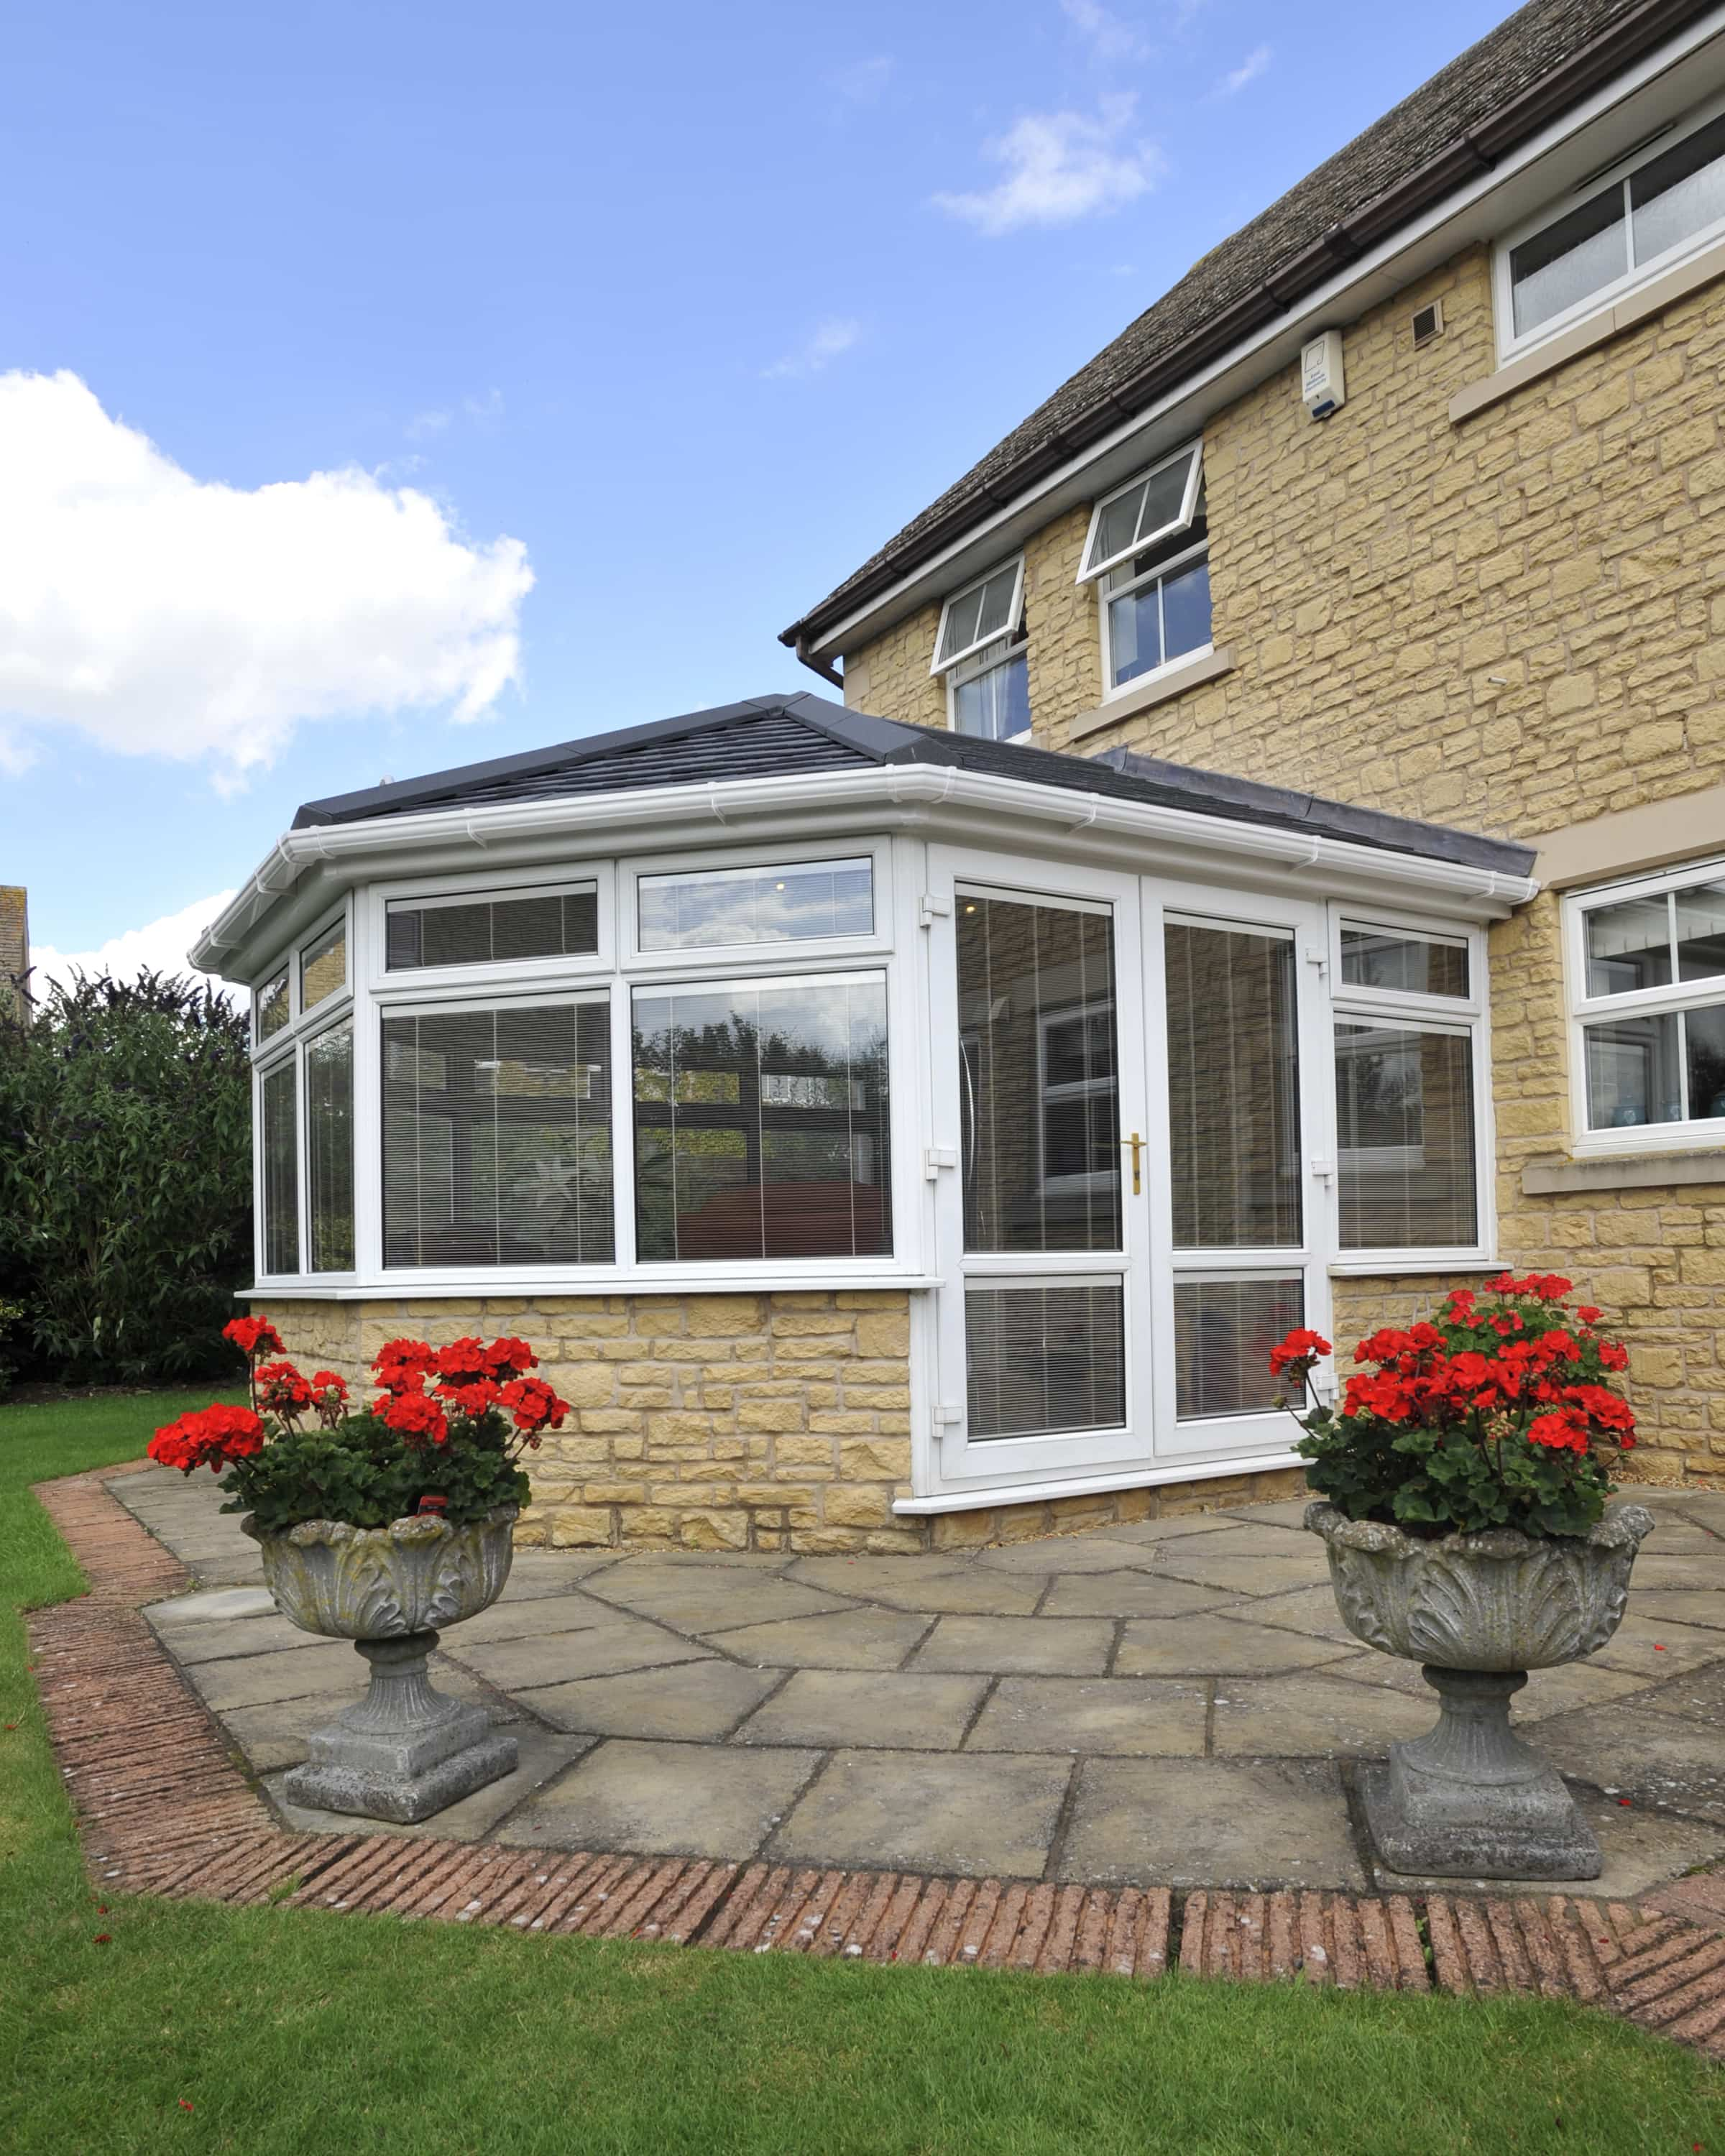 Replace Your Existing Conservatory Roof With A Garden Room: The Equinox Guide To A Conservatory For All Seasons